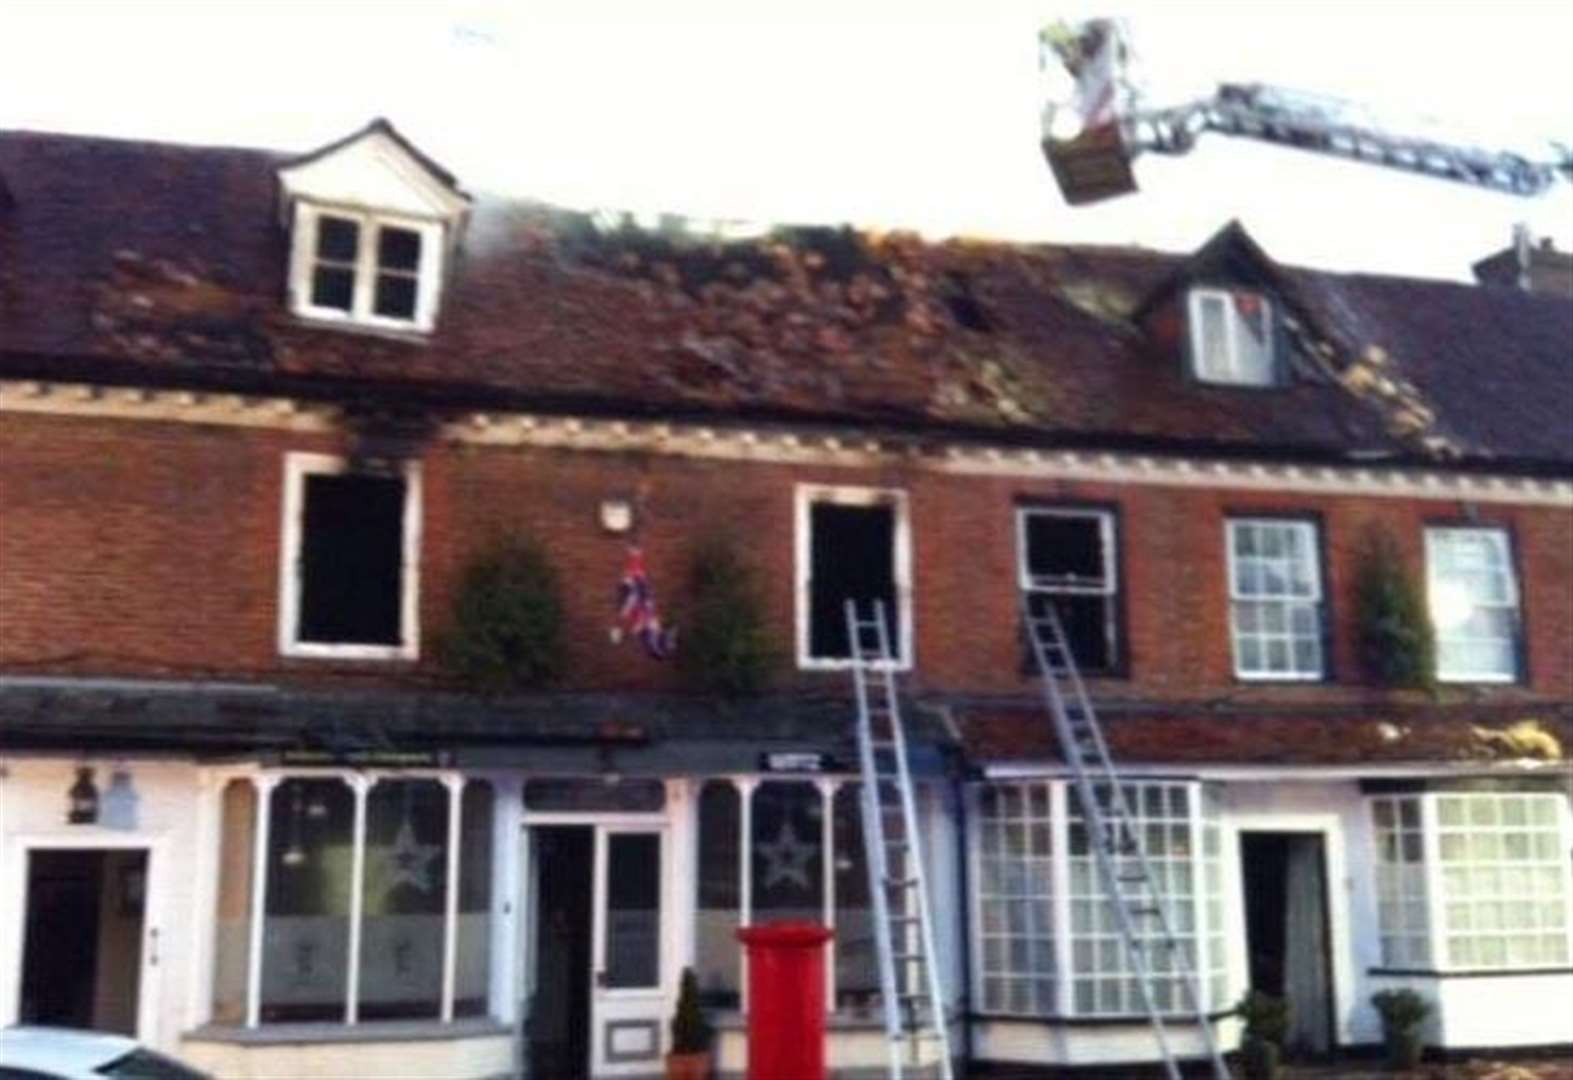 Dad tells of dramatic night-time rescue as fire took hold